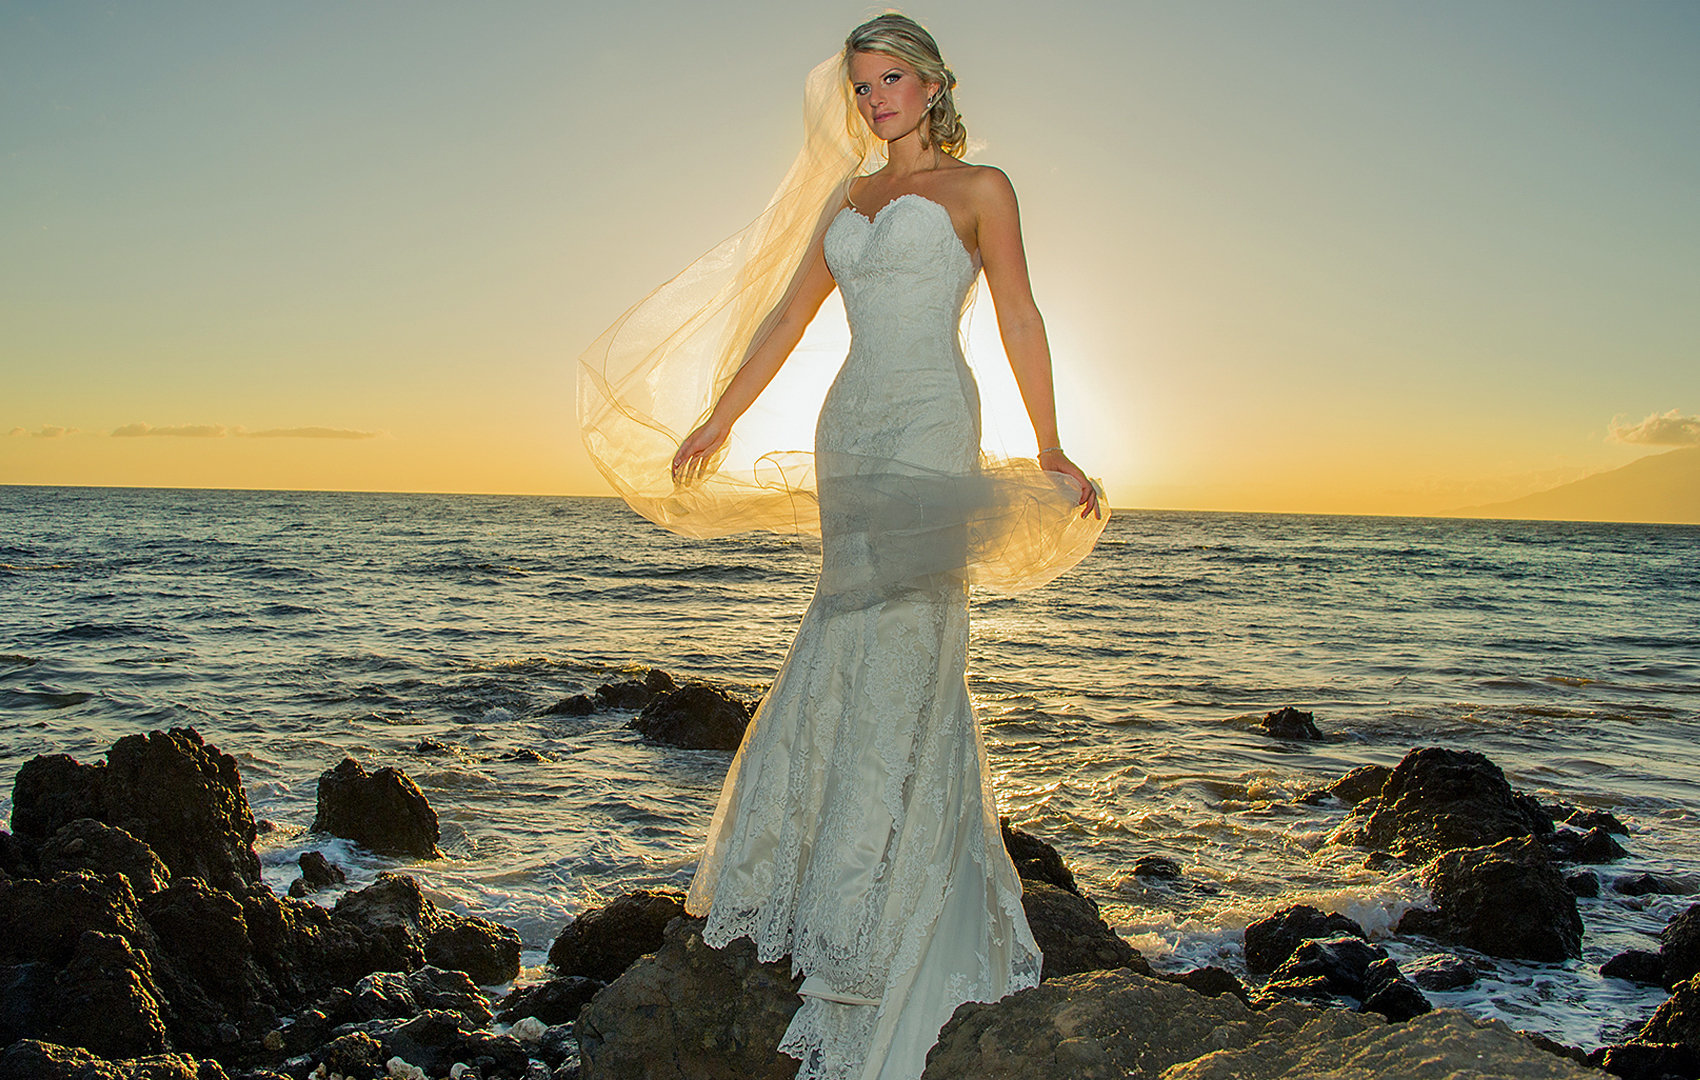 Maui professional photographers